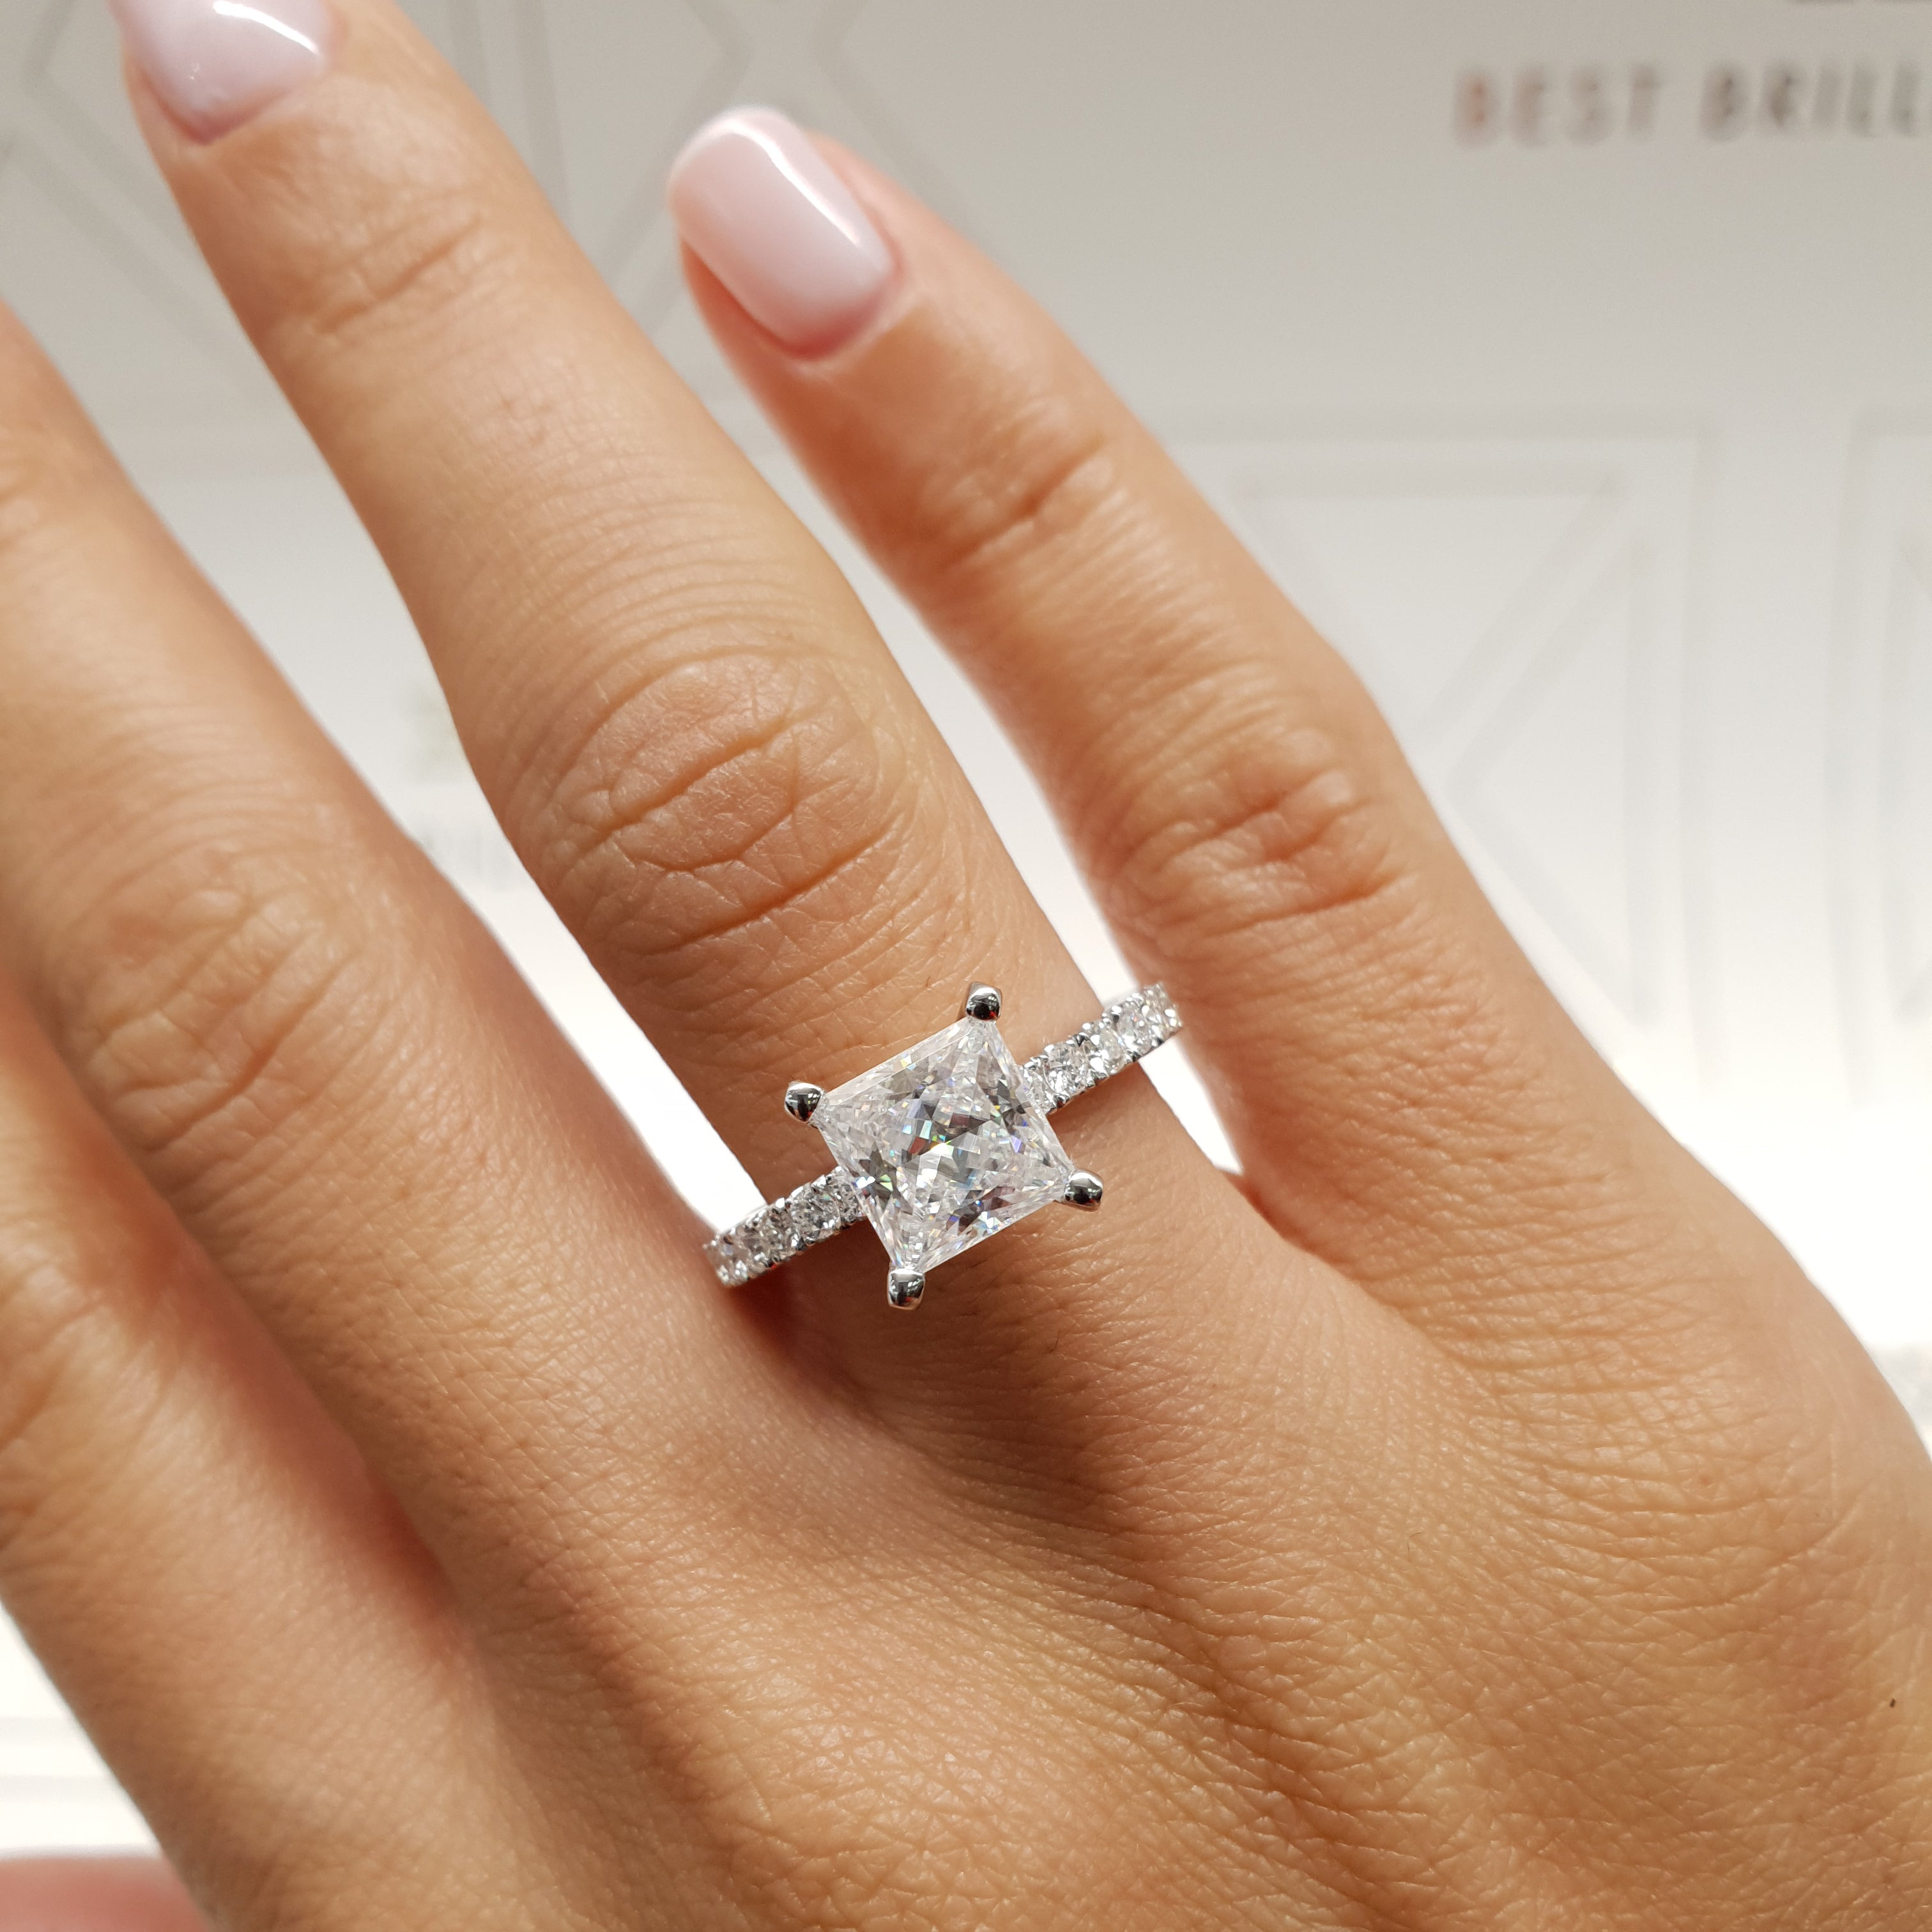 The Blair Lab Grown Ring - 2 CARAT PRINCESS E COLOR VS1 CLARITY 14K WHITE GOLD DIAMOND ENGAGEMENT RING #LG10011